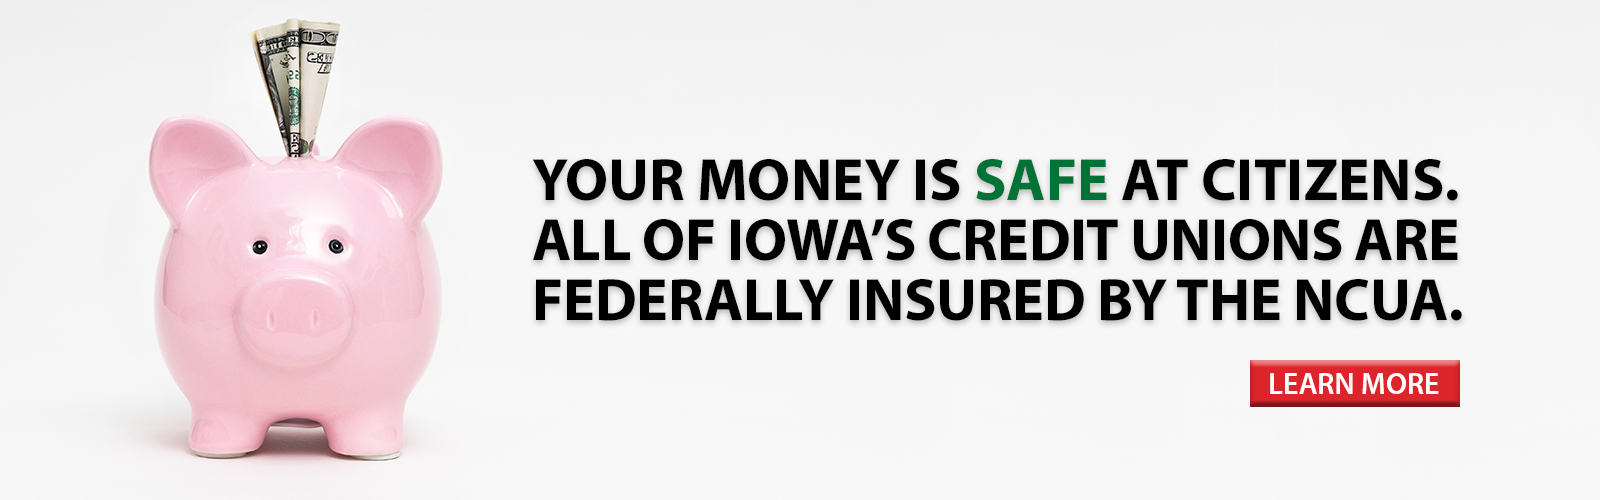 Your money is safe at Citizens. All of Iowa's credit unions are federally insured by the NCUA.